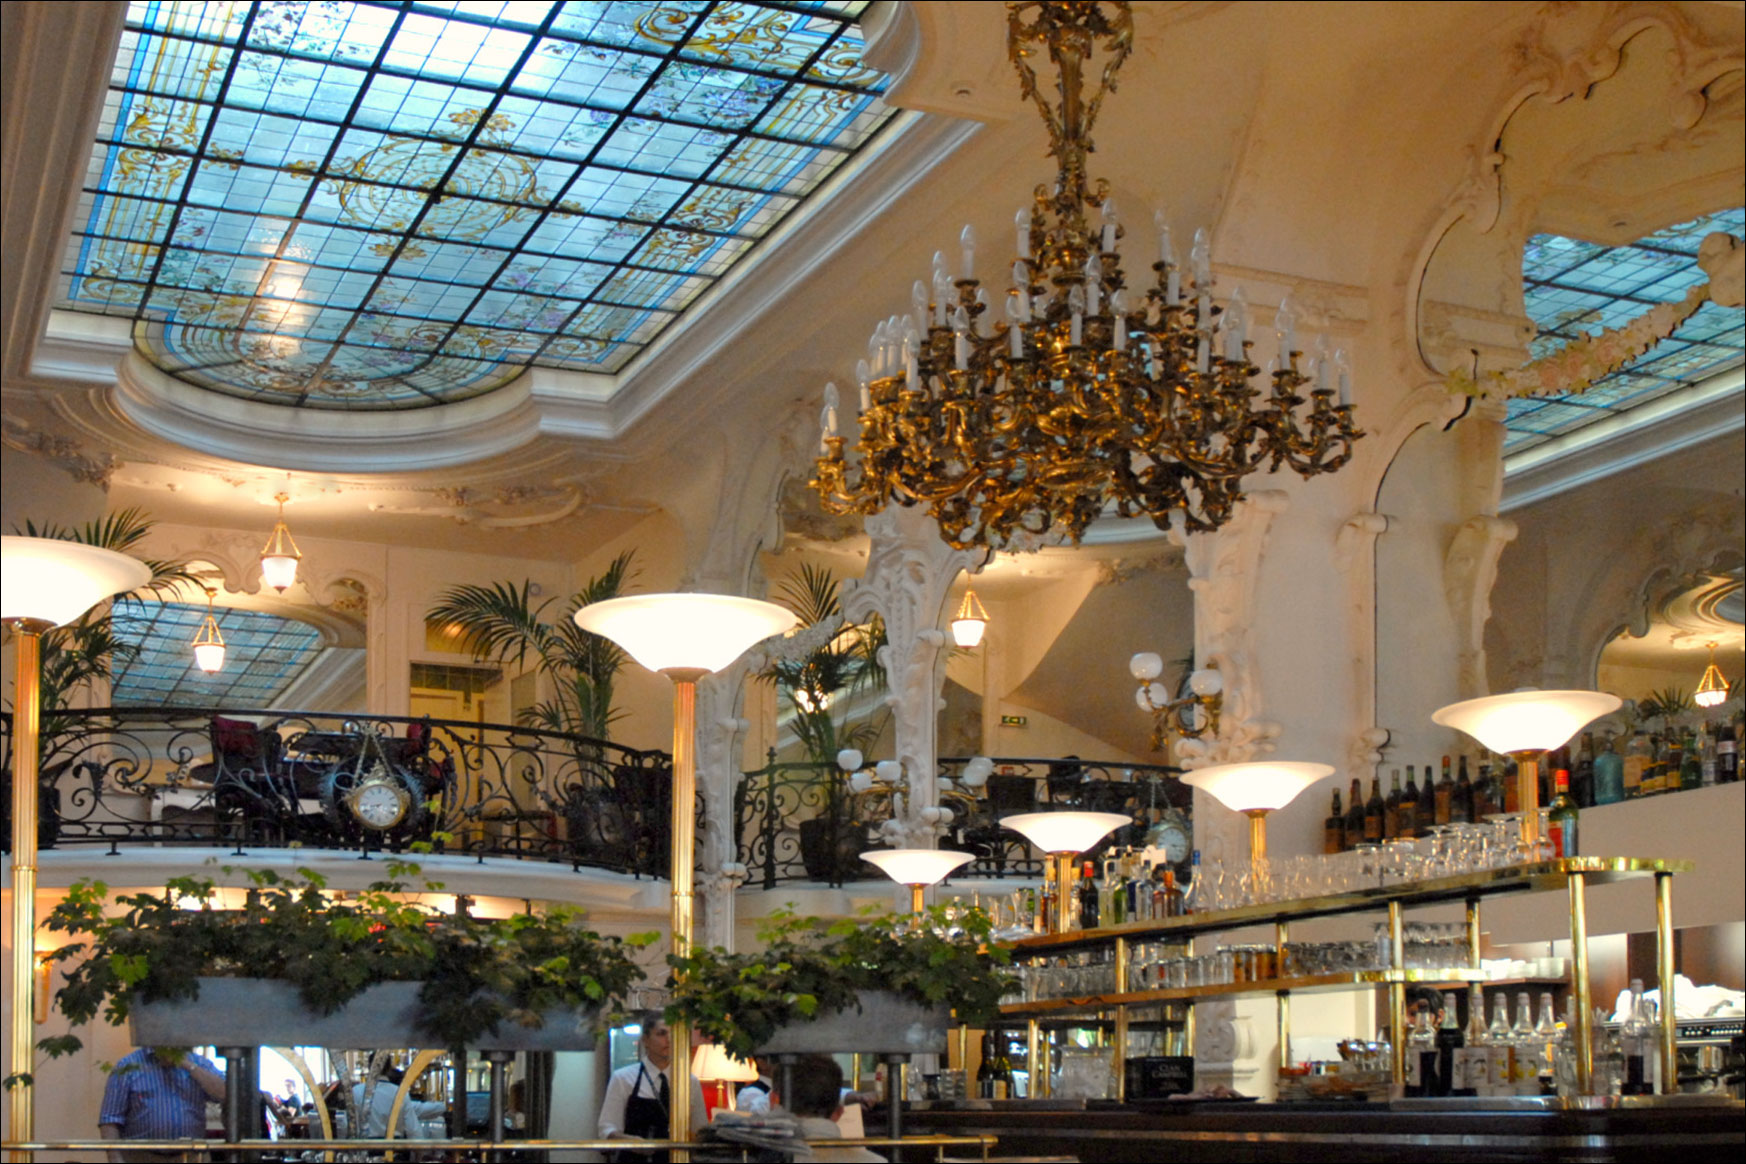 Le Grand Cafe De Paris Amelie Les Bains Societe Com